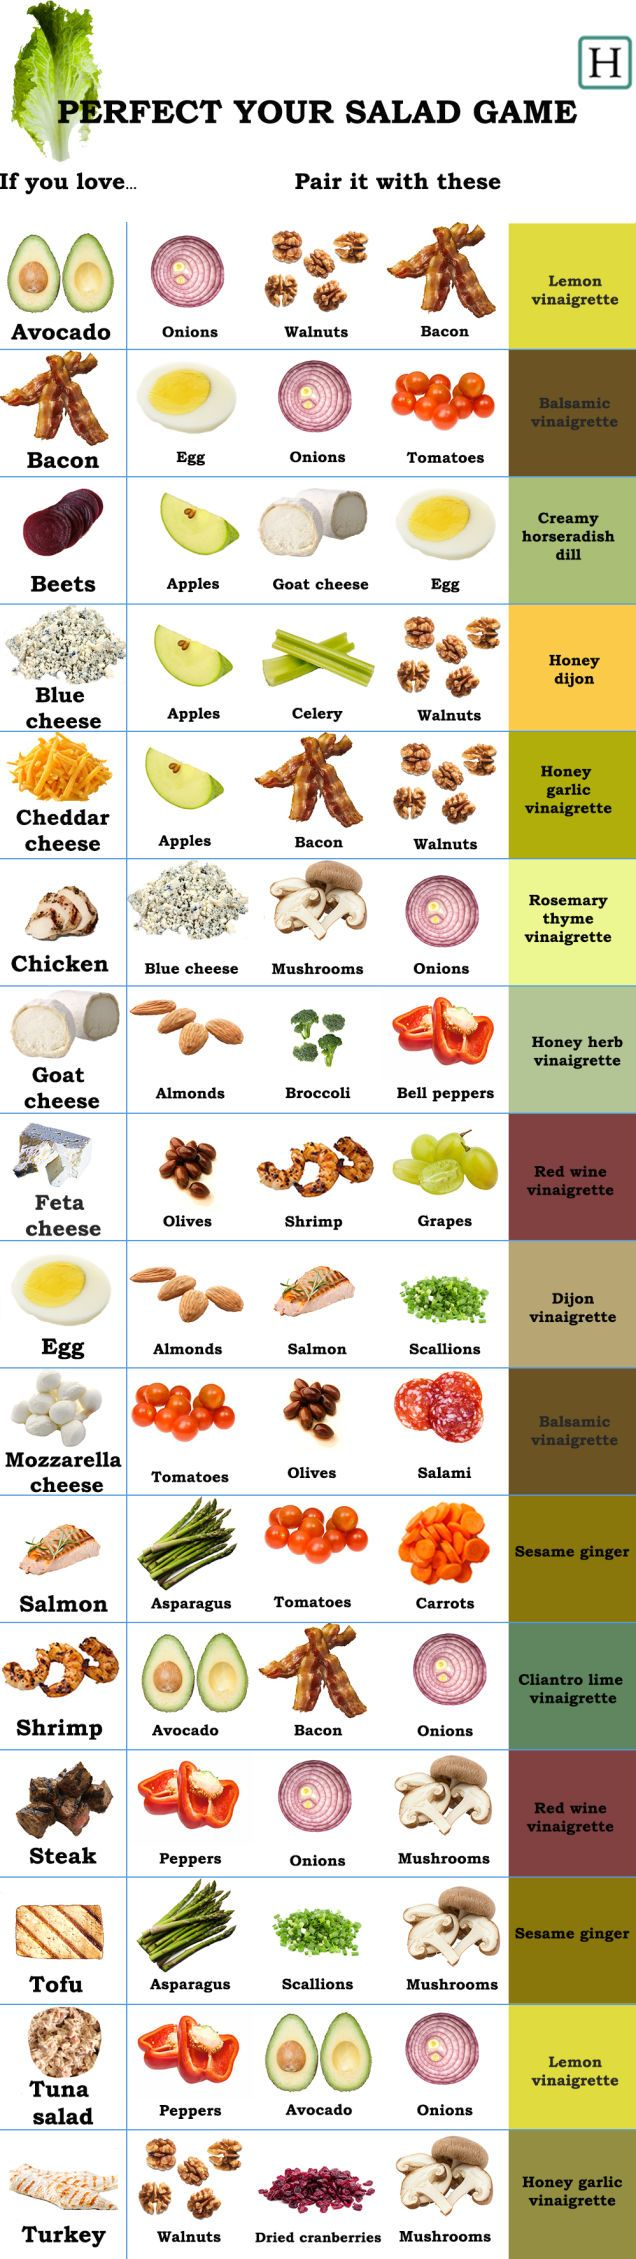 Tired of the same old, boring salads? While there are nearly endless ingredient combinations you can try, this graphic suggests tried-and-true flavor pairings that balance primary tastes. Learn to Make Any Dish You Cook Better with the Science of Taste Learn to Make Any Dish You Cook Better with the Science of Taste Learn to Make Any Dish You Cook Better with the… It's happened to us all at one point or another: The dish you've cooked is too salty, too … Read more Read more